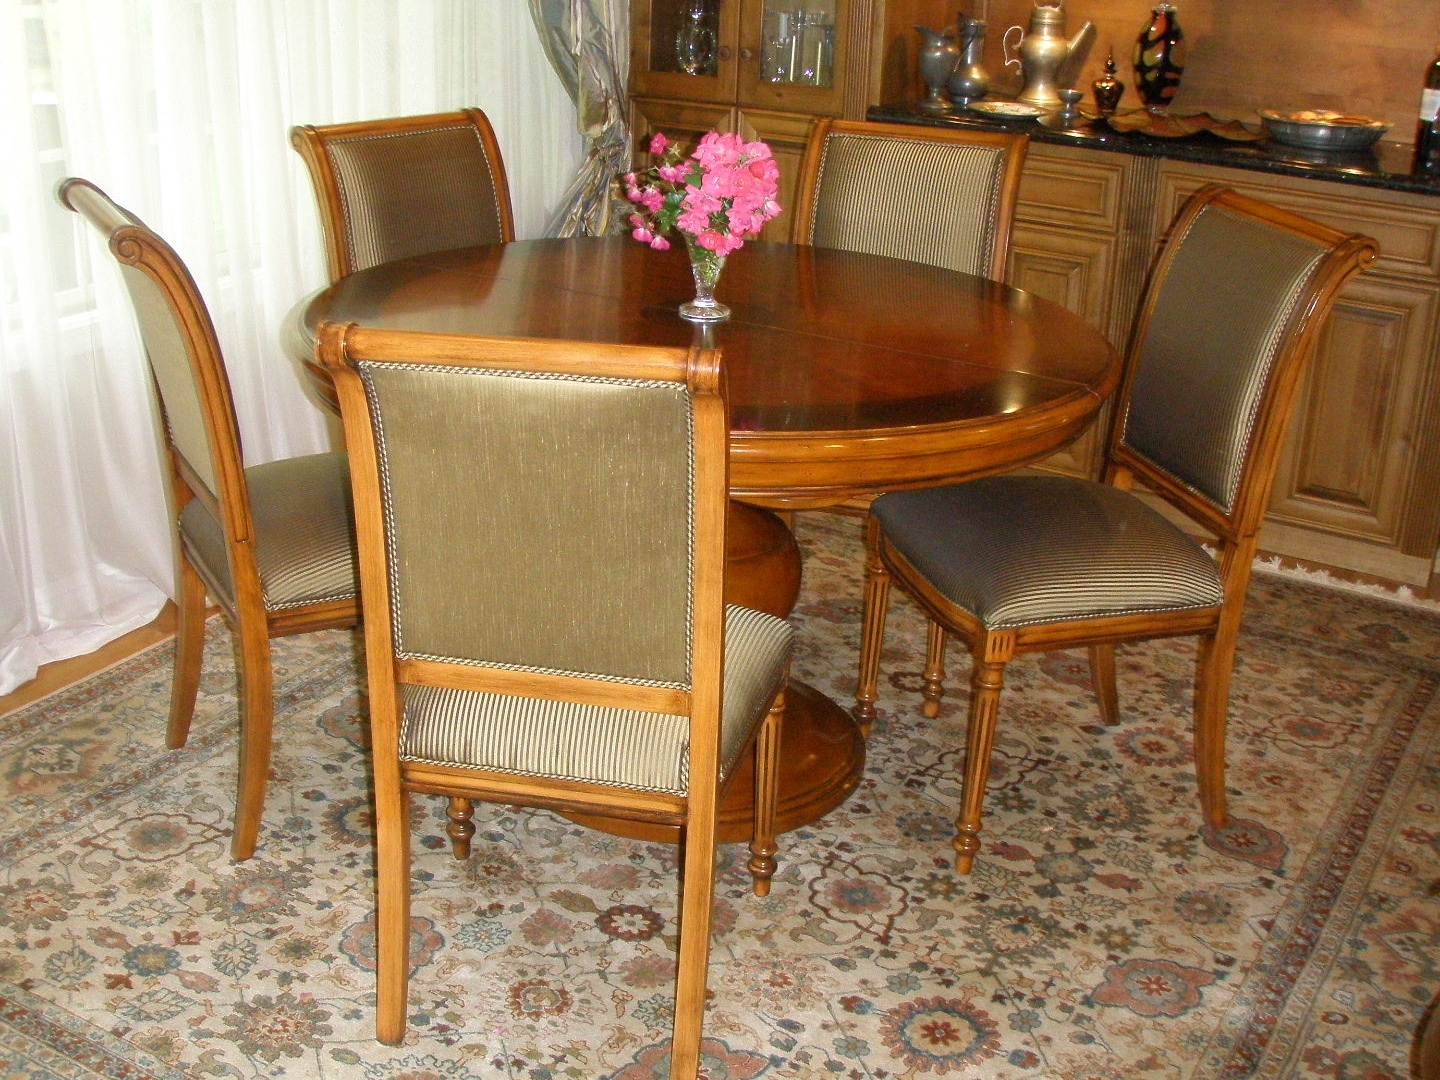 P6041445_DR_chairs_table_.jpg